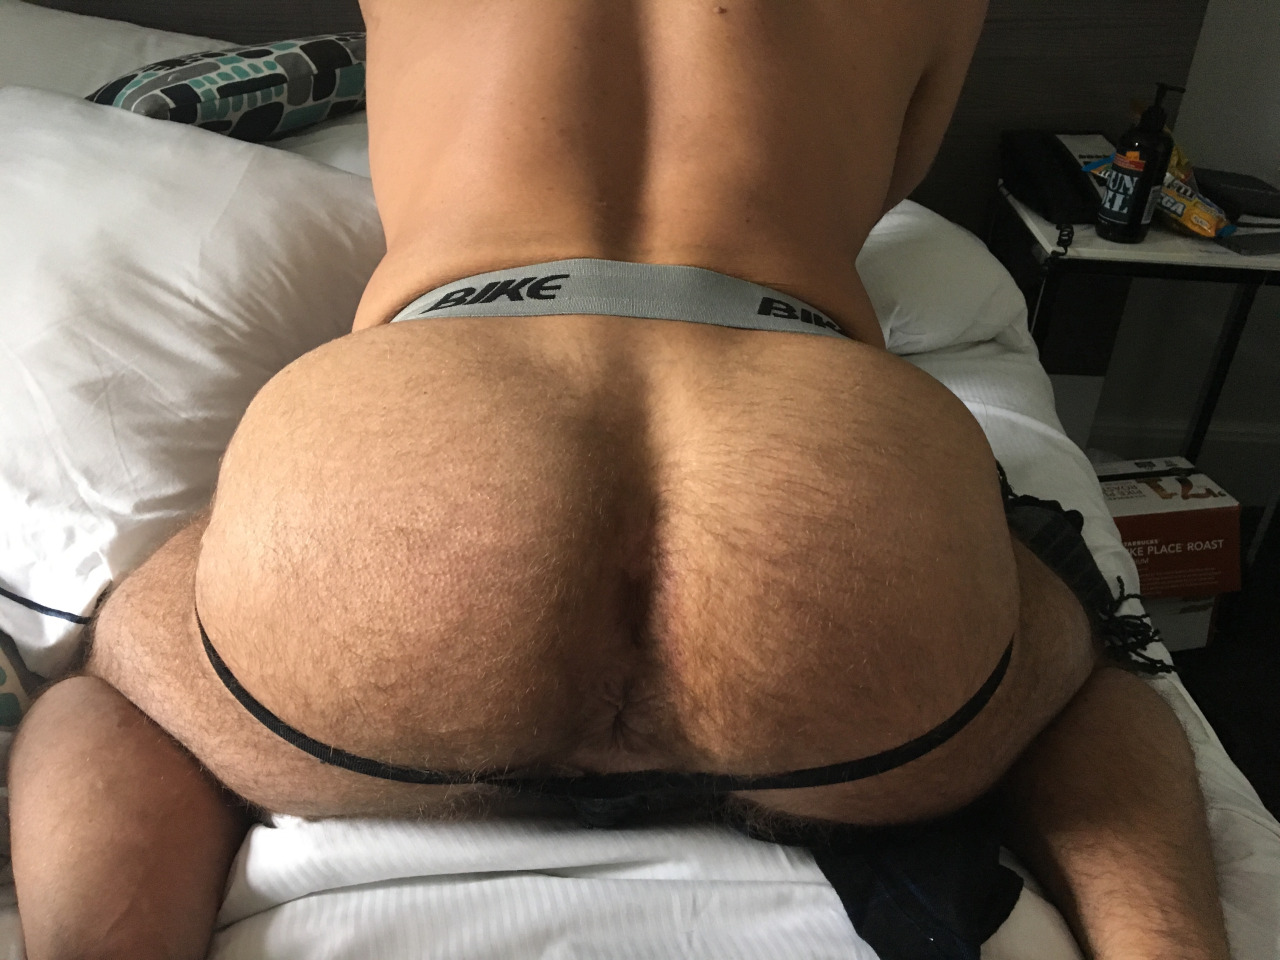 Watch me play with my fat ass and my giant bbc in my new jock